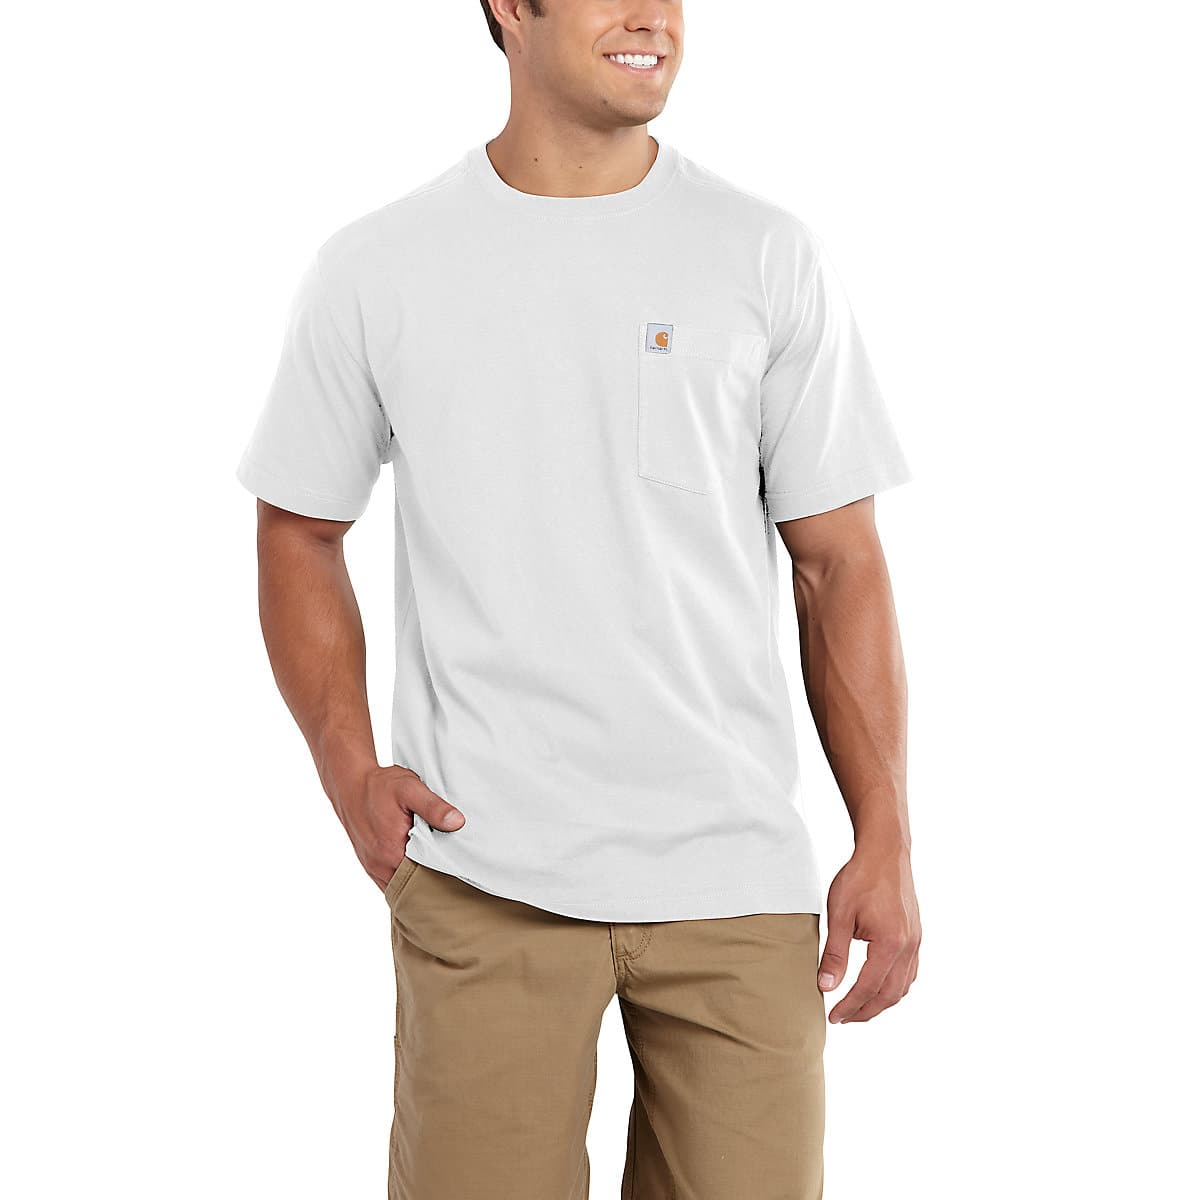 c54f191f Men's Maddock Pocket Short-Sleeve T-Shirt 101125 | Carhartt